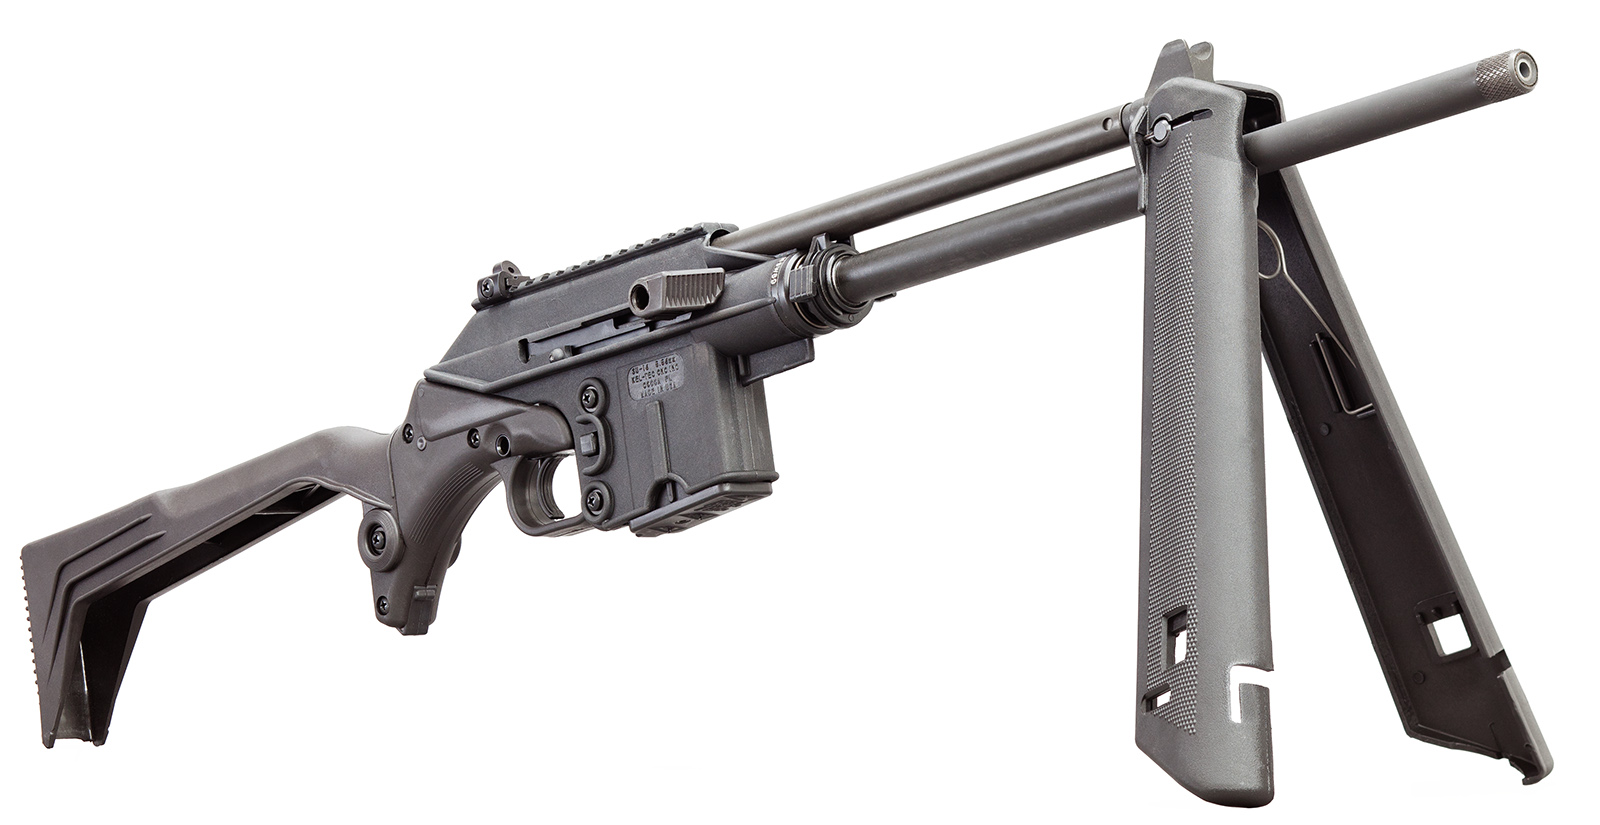 Recommended Sight Upgrades for Kel-Tec SU16